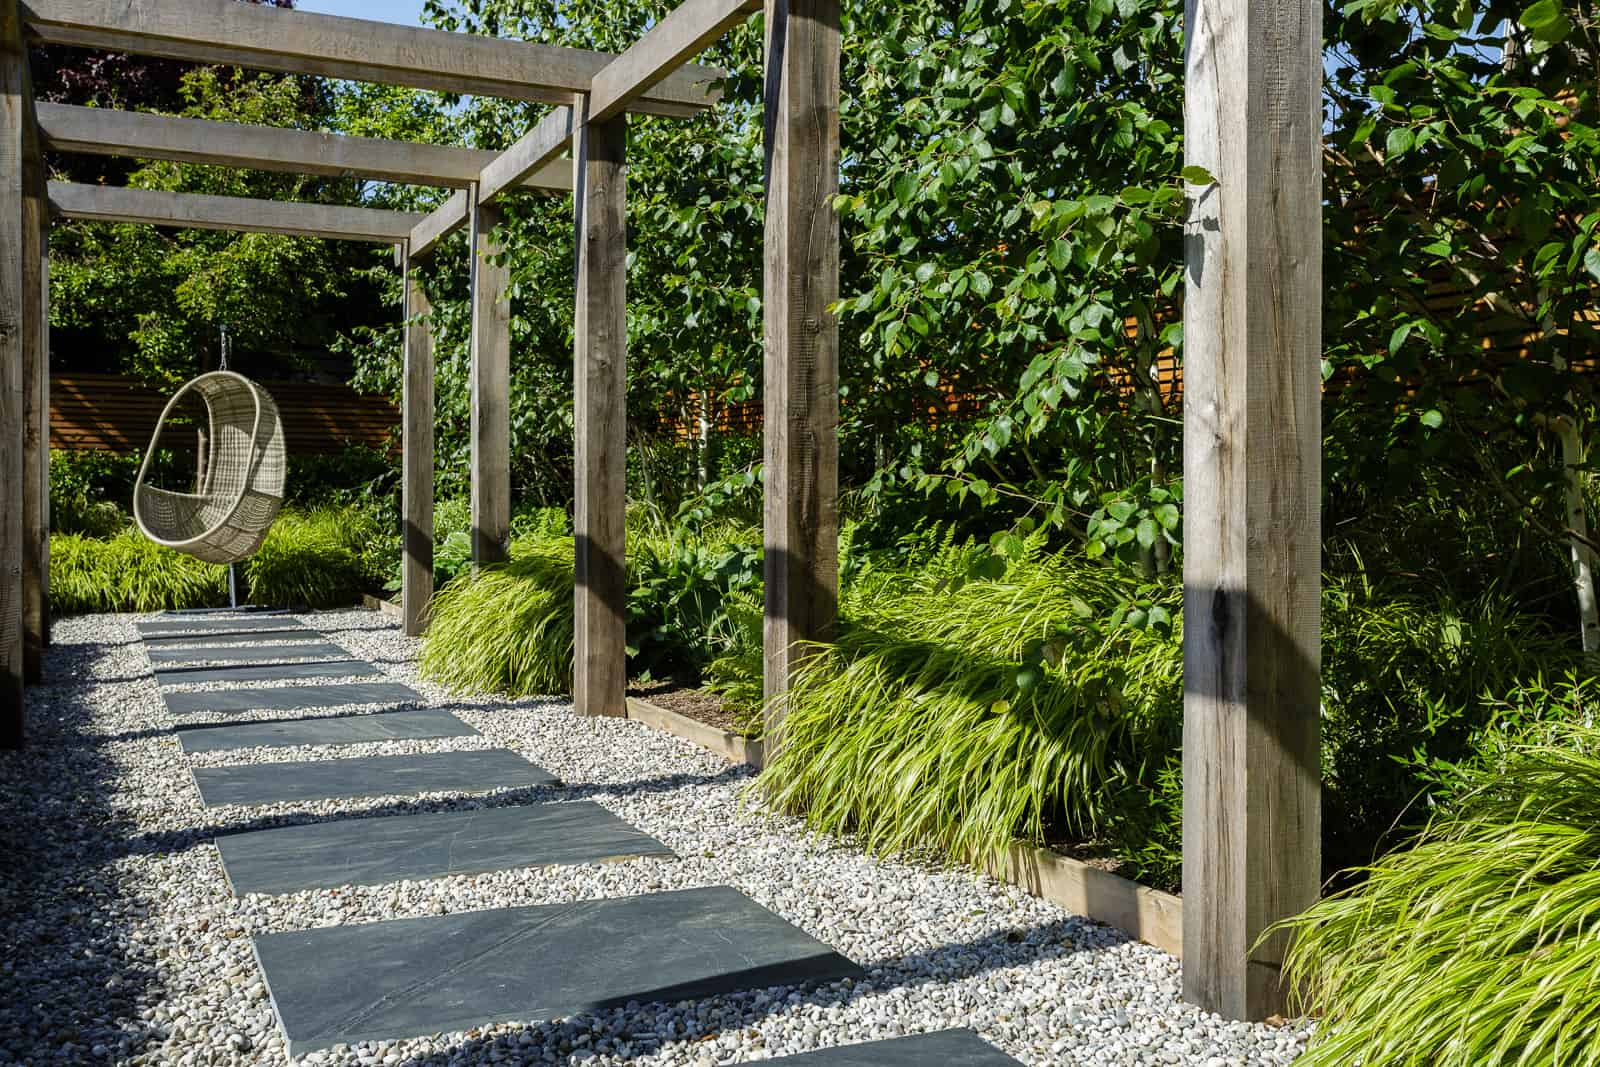 Wooden pergola above a slate path with a hanging wicker seat as a feature